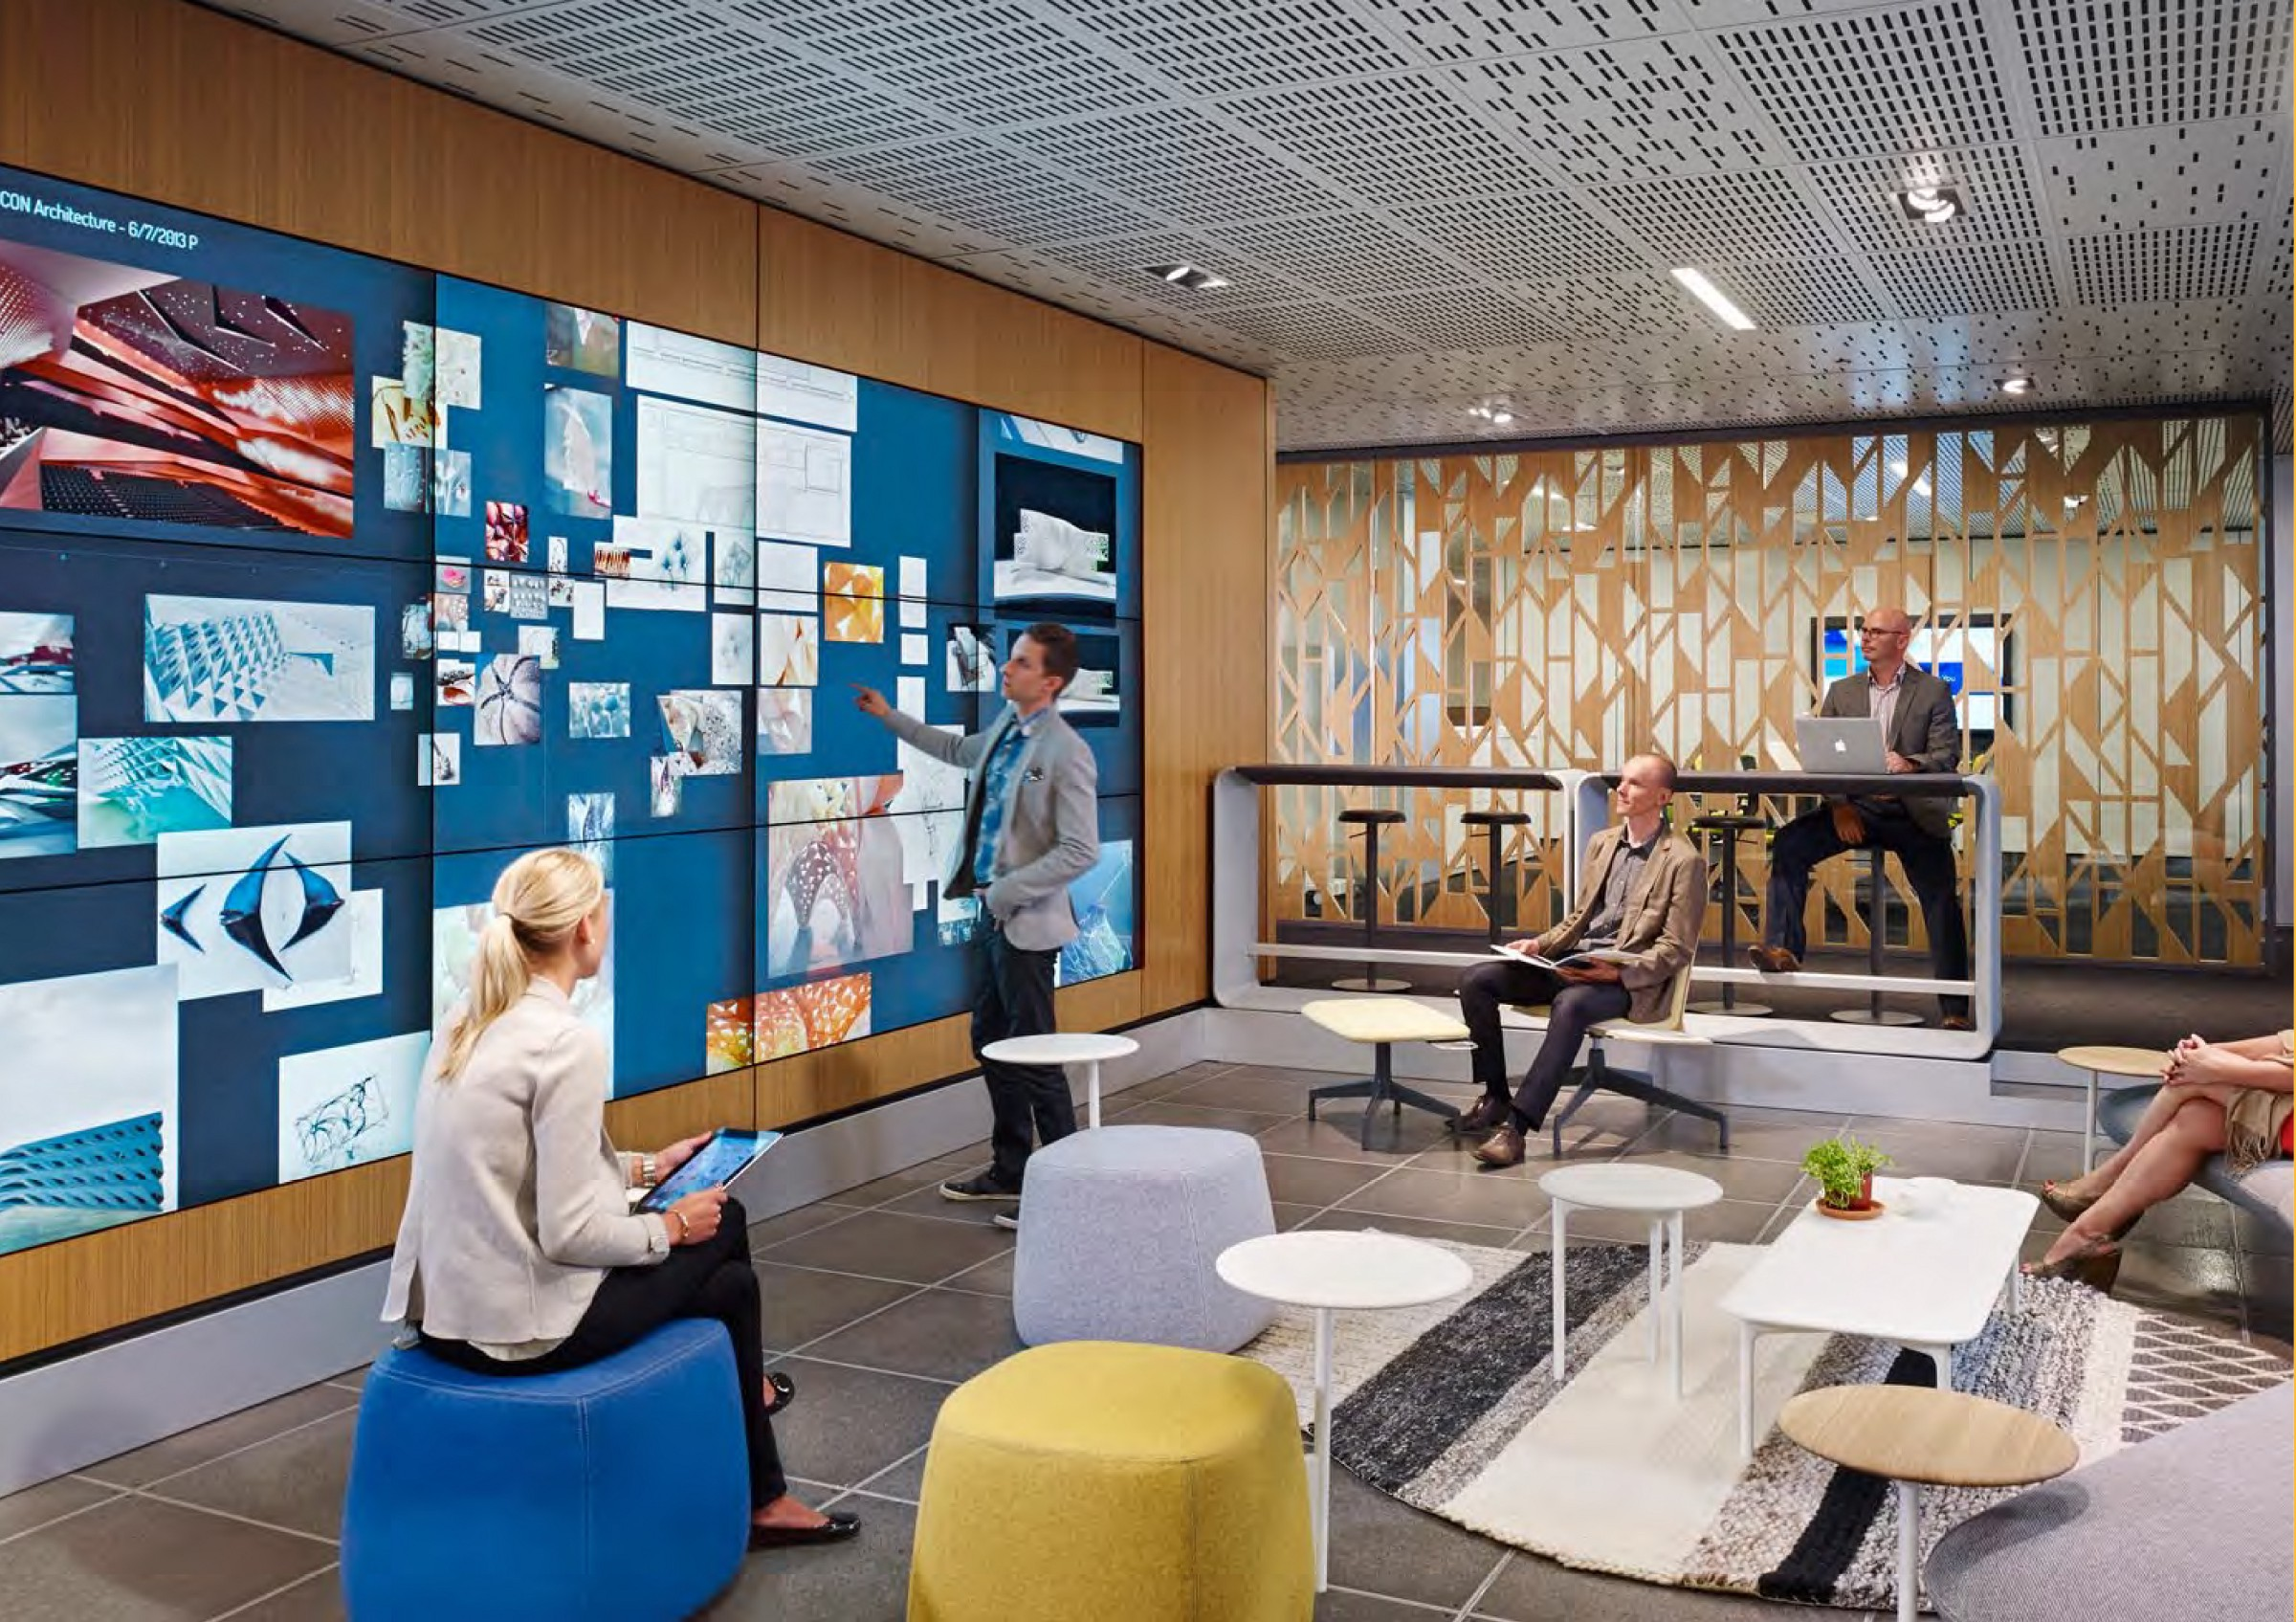 /3-technologies-to-transform-your-workplace-8b56353fd806 feature image